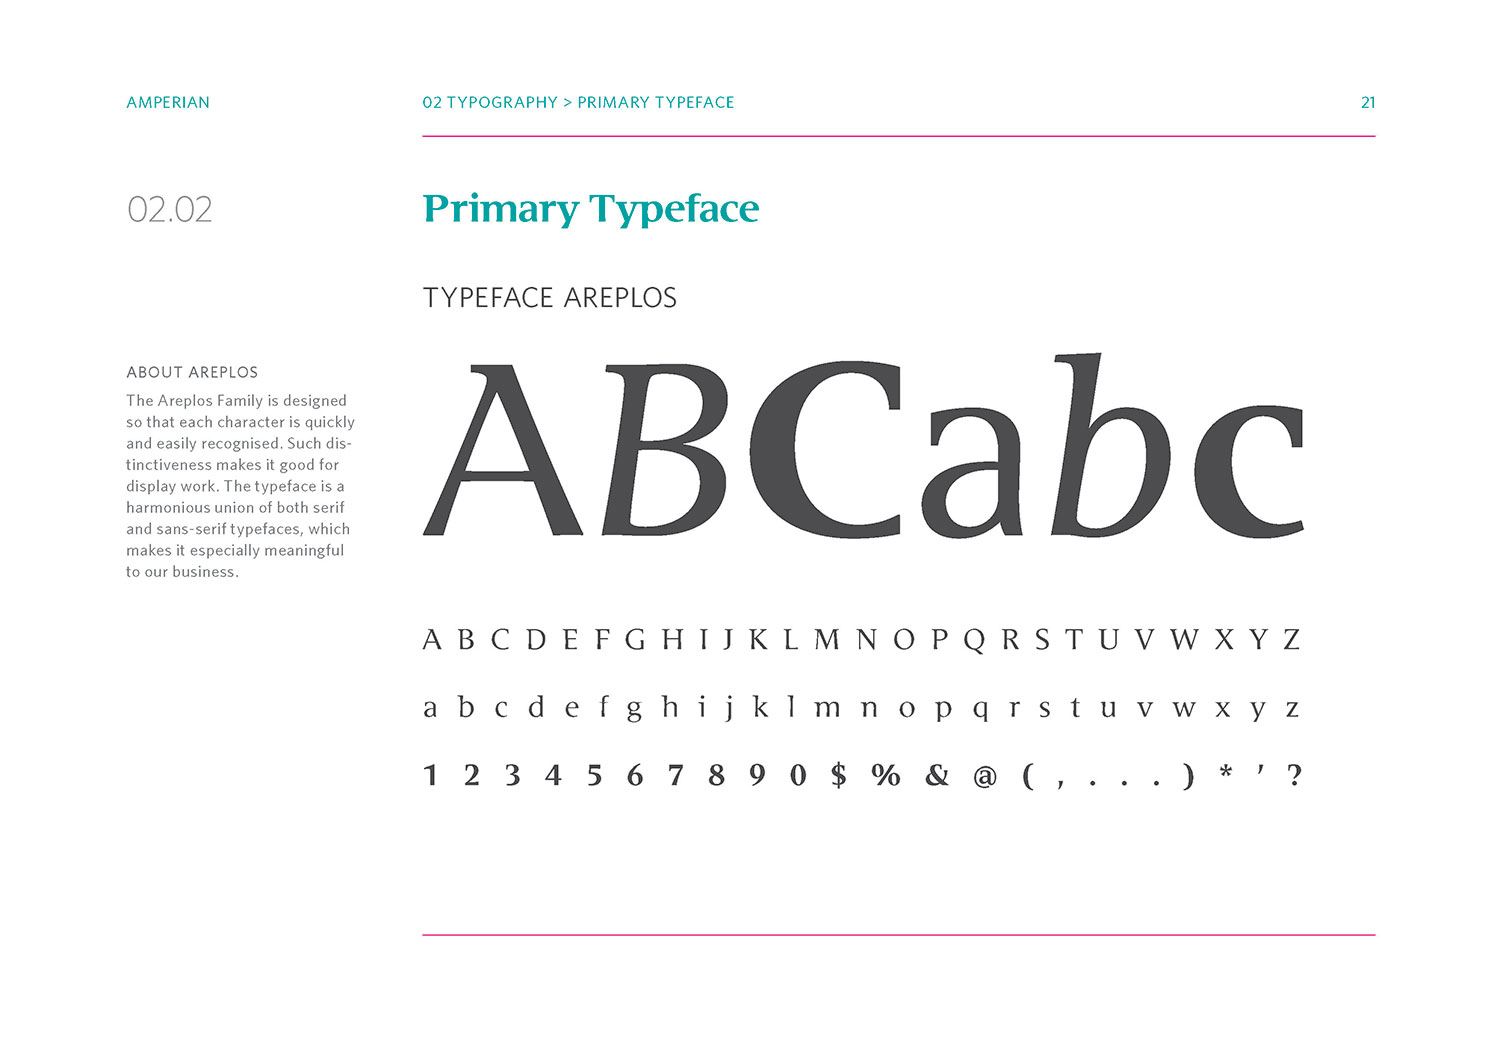 Amperian SG branding corporate identity design guide manual - Primary typeface.